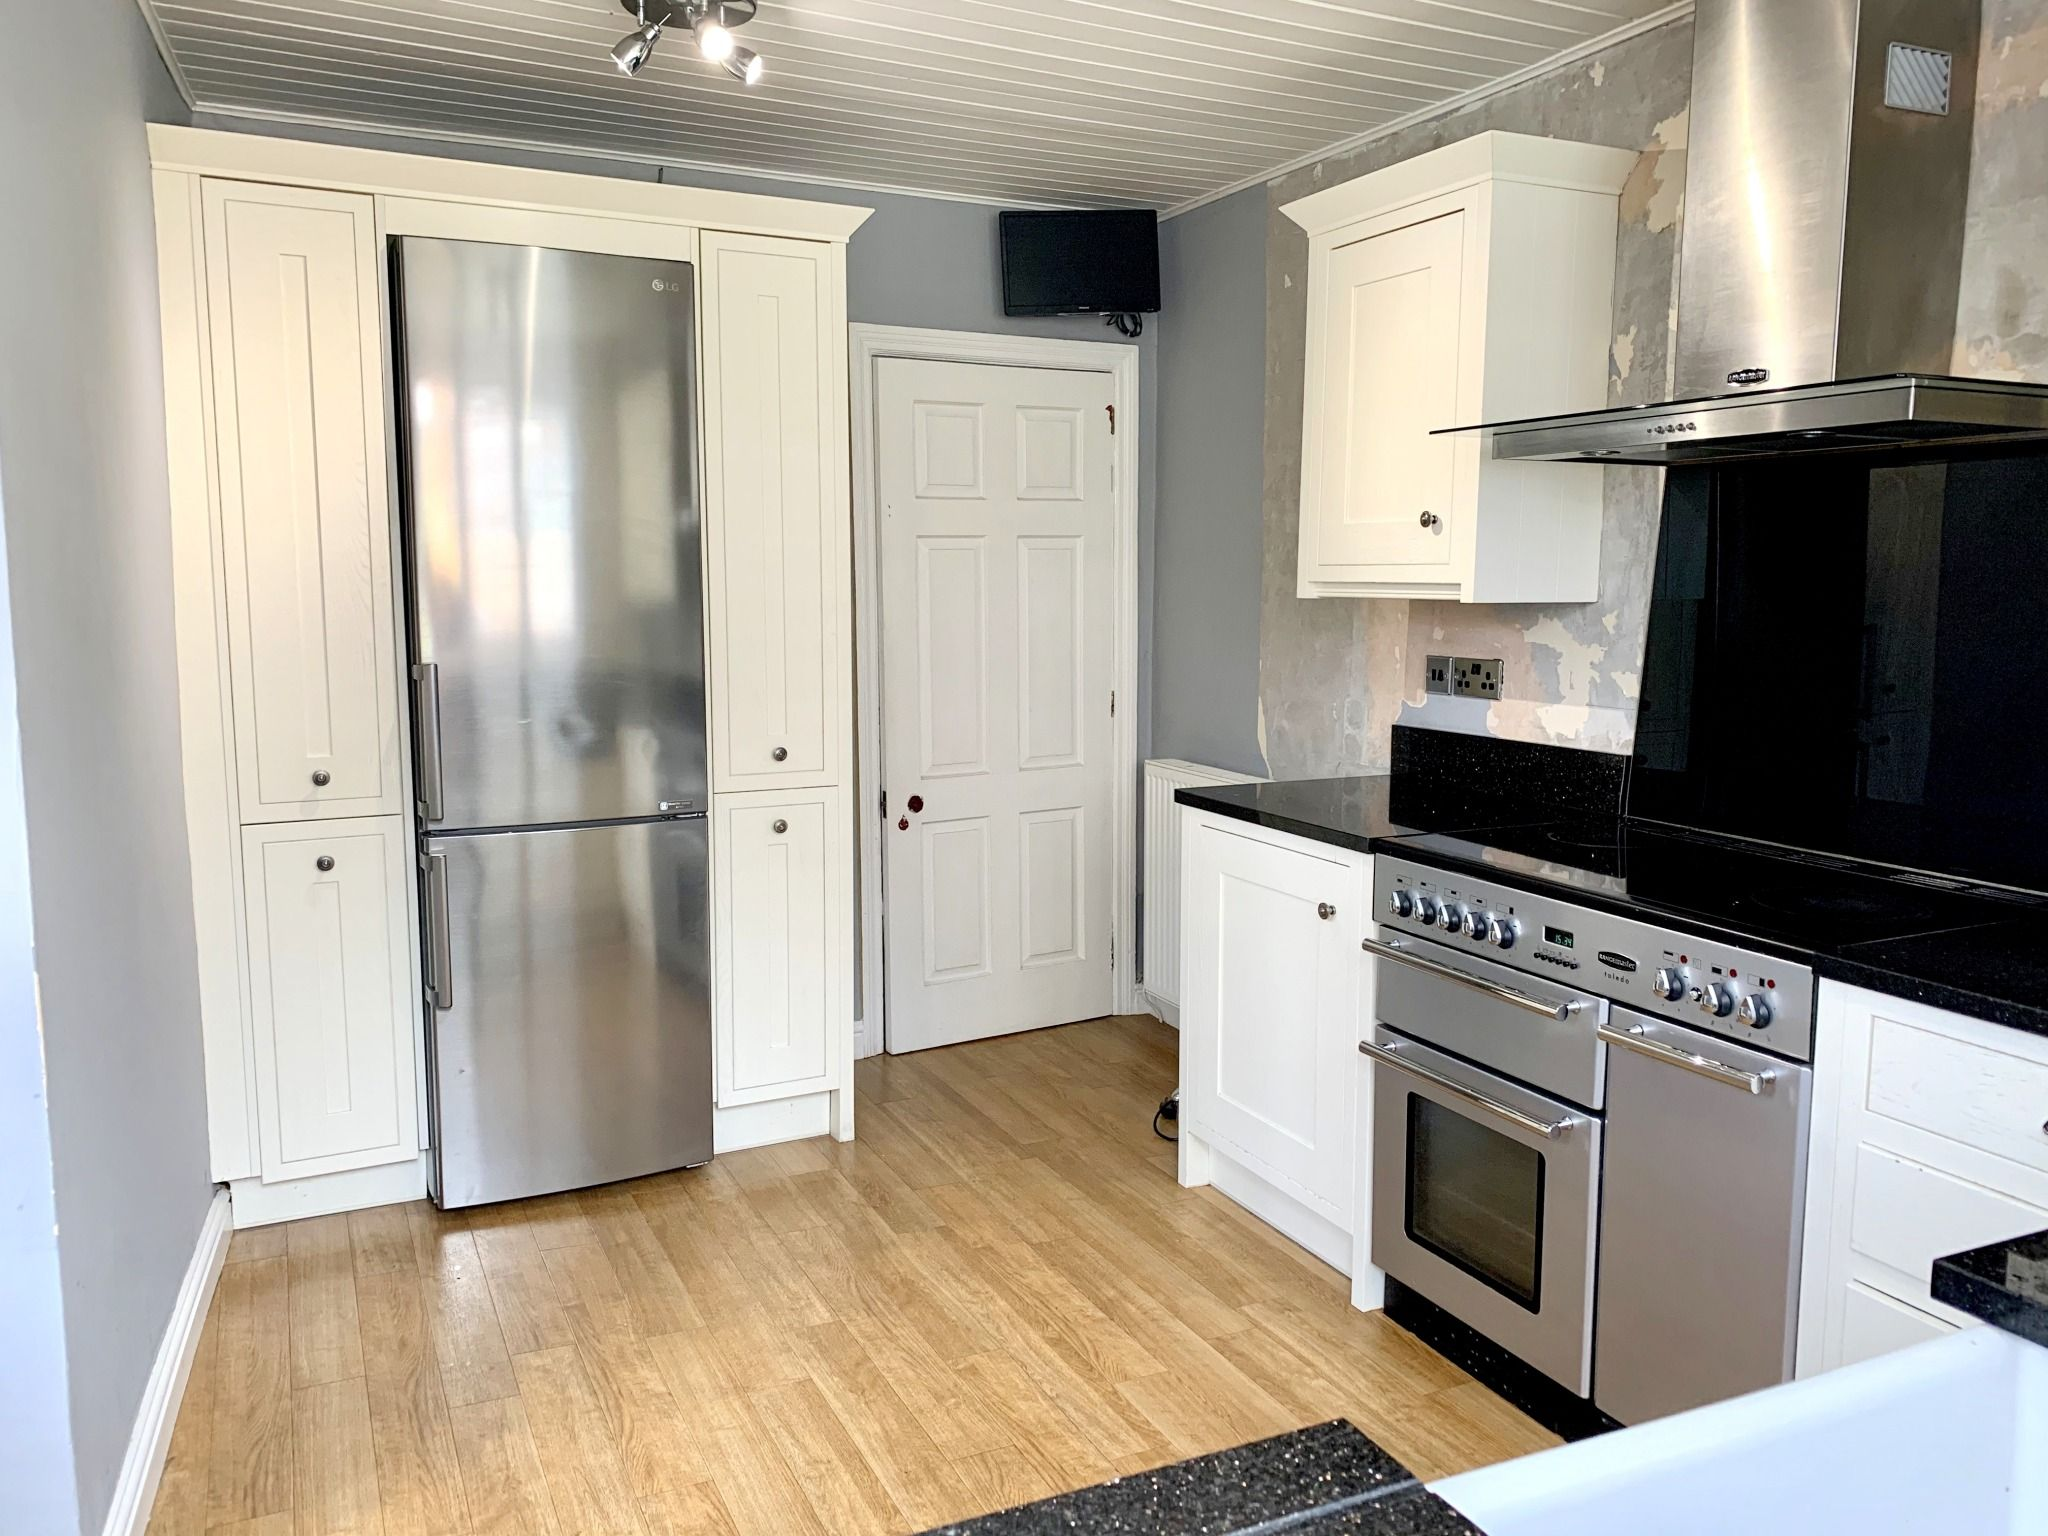 Howdens Kitchen For Sale The Used Kitchen Company in